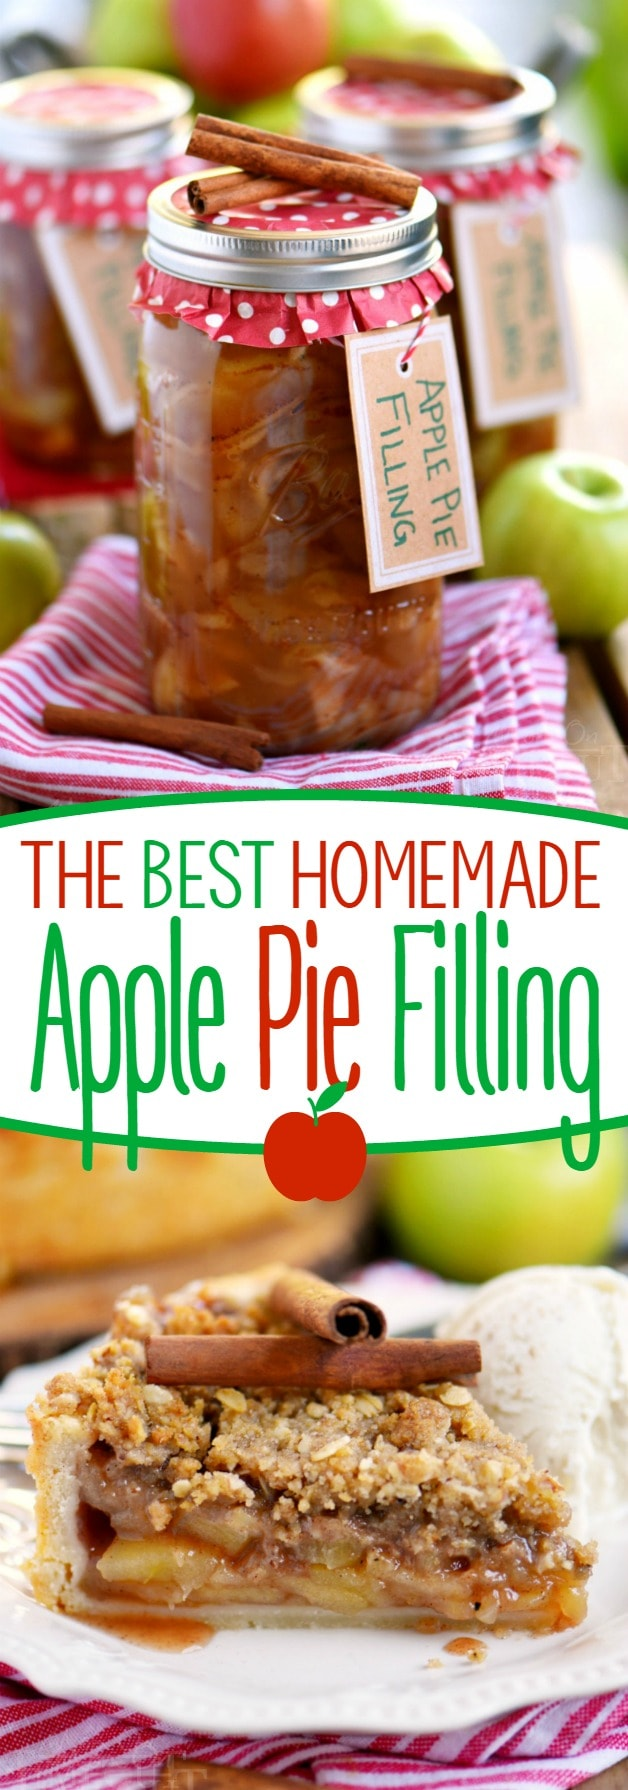 apple-pie-filling-collage